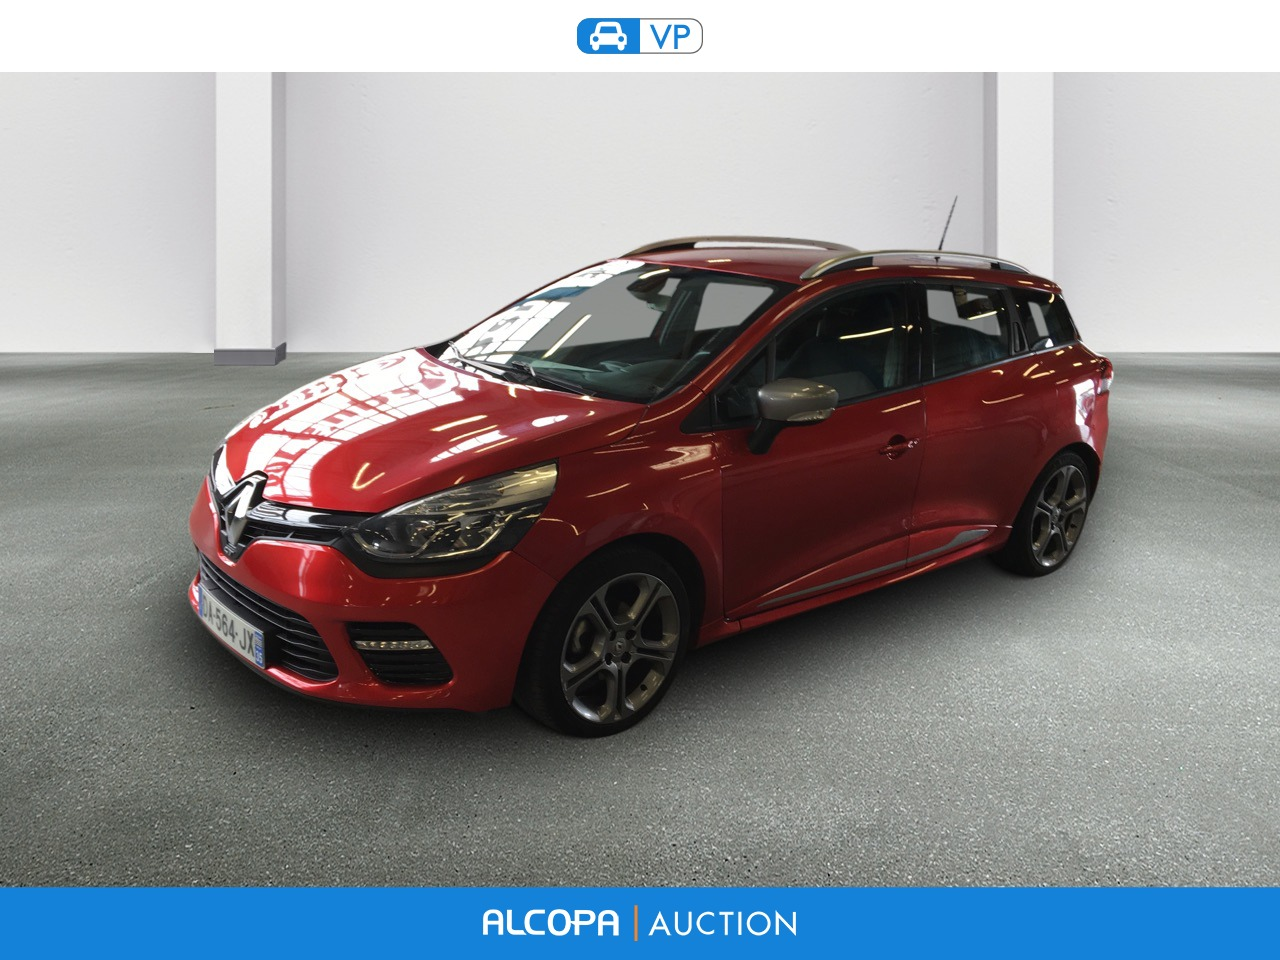 renault clio iv estate clio estate iv tce 120 gt edc alcopa auction. Black Bedroom Furniture Sets. Home Design Ideas